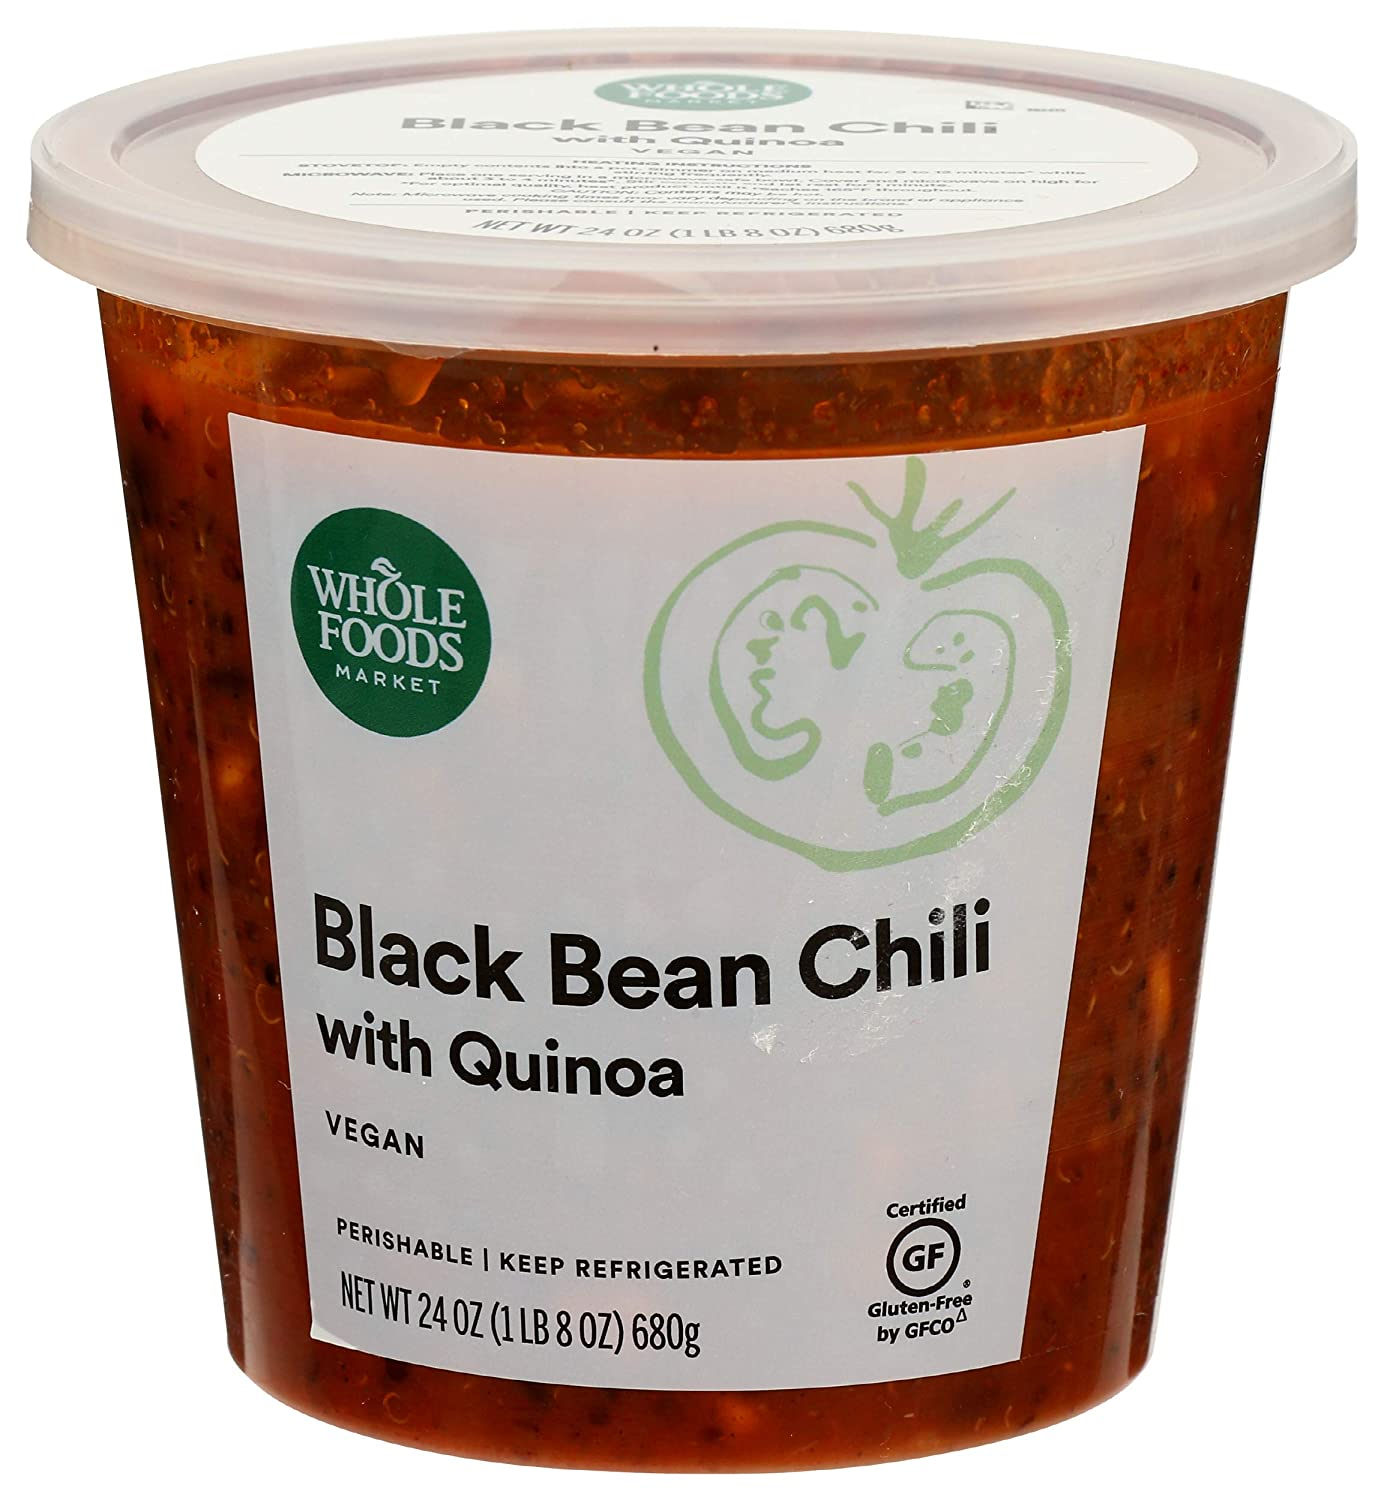 Whole Foods Inexpensive Market Black Bean Chili Popular products Ounce 24 Quinoa With